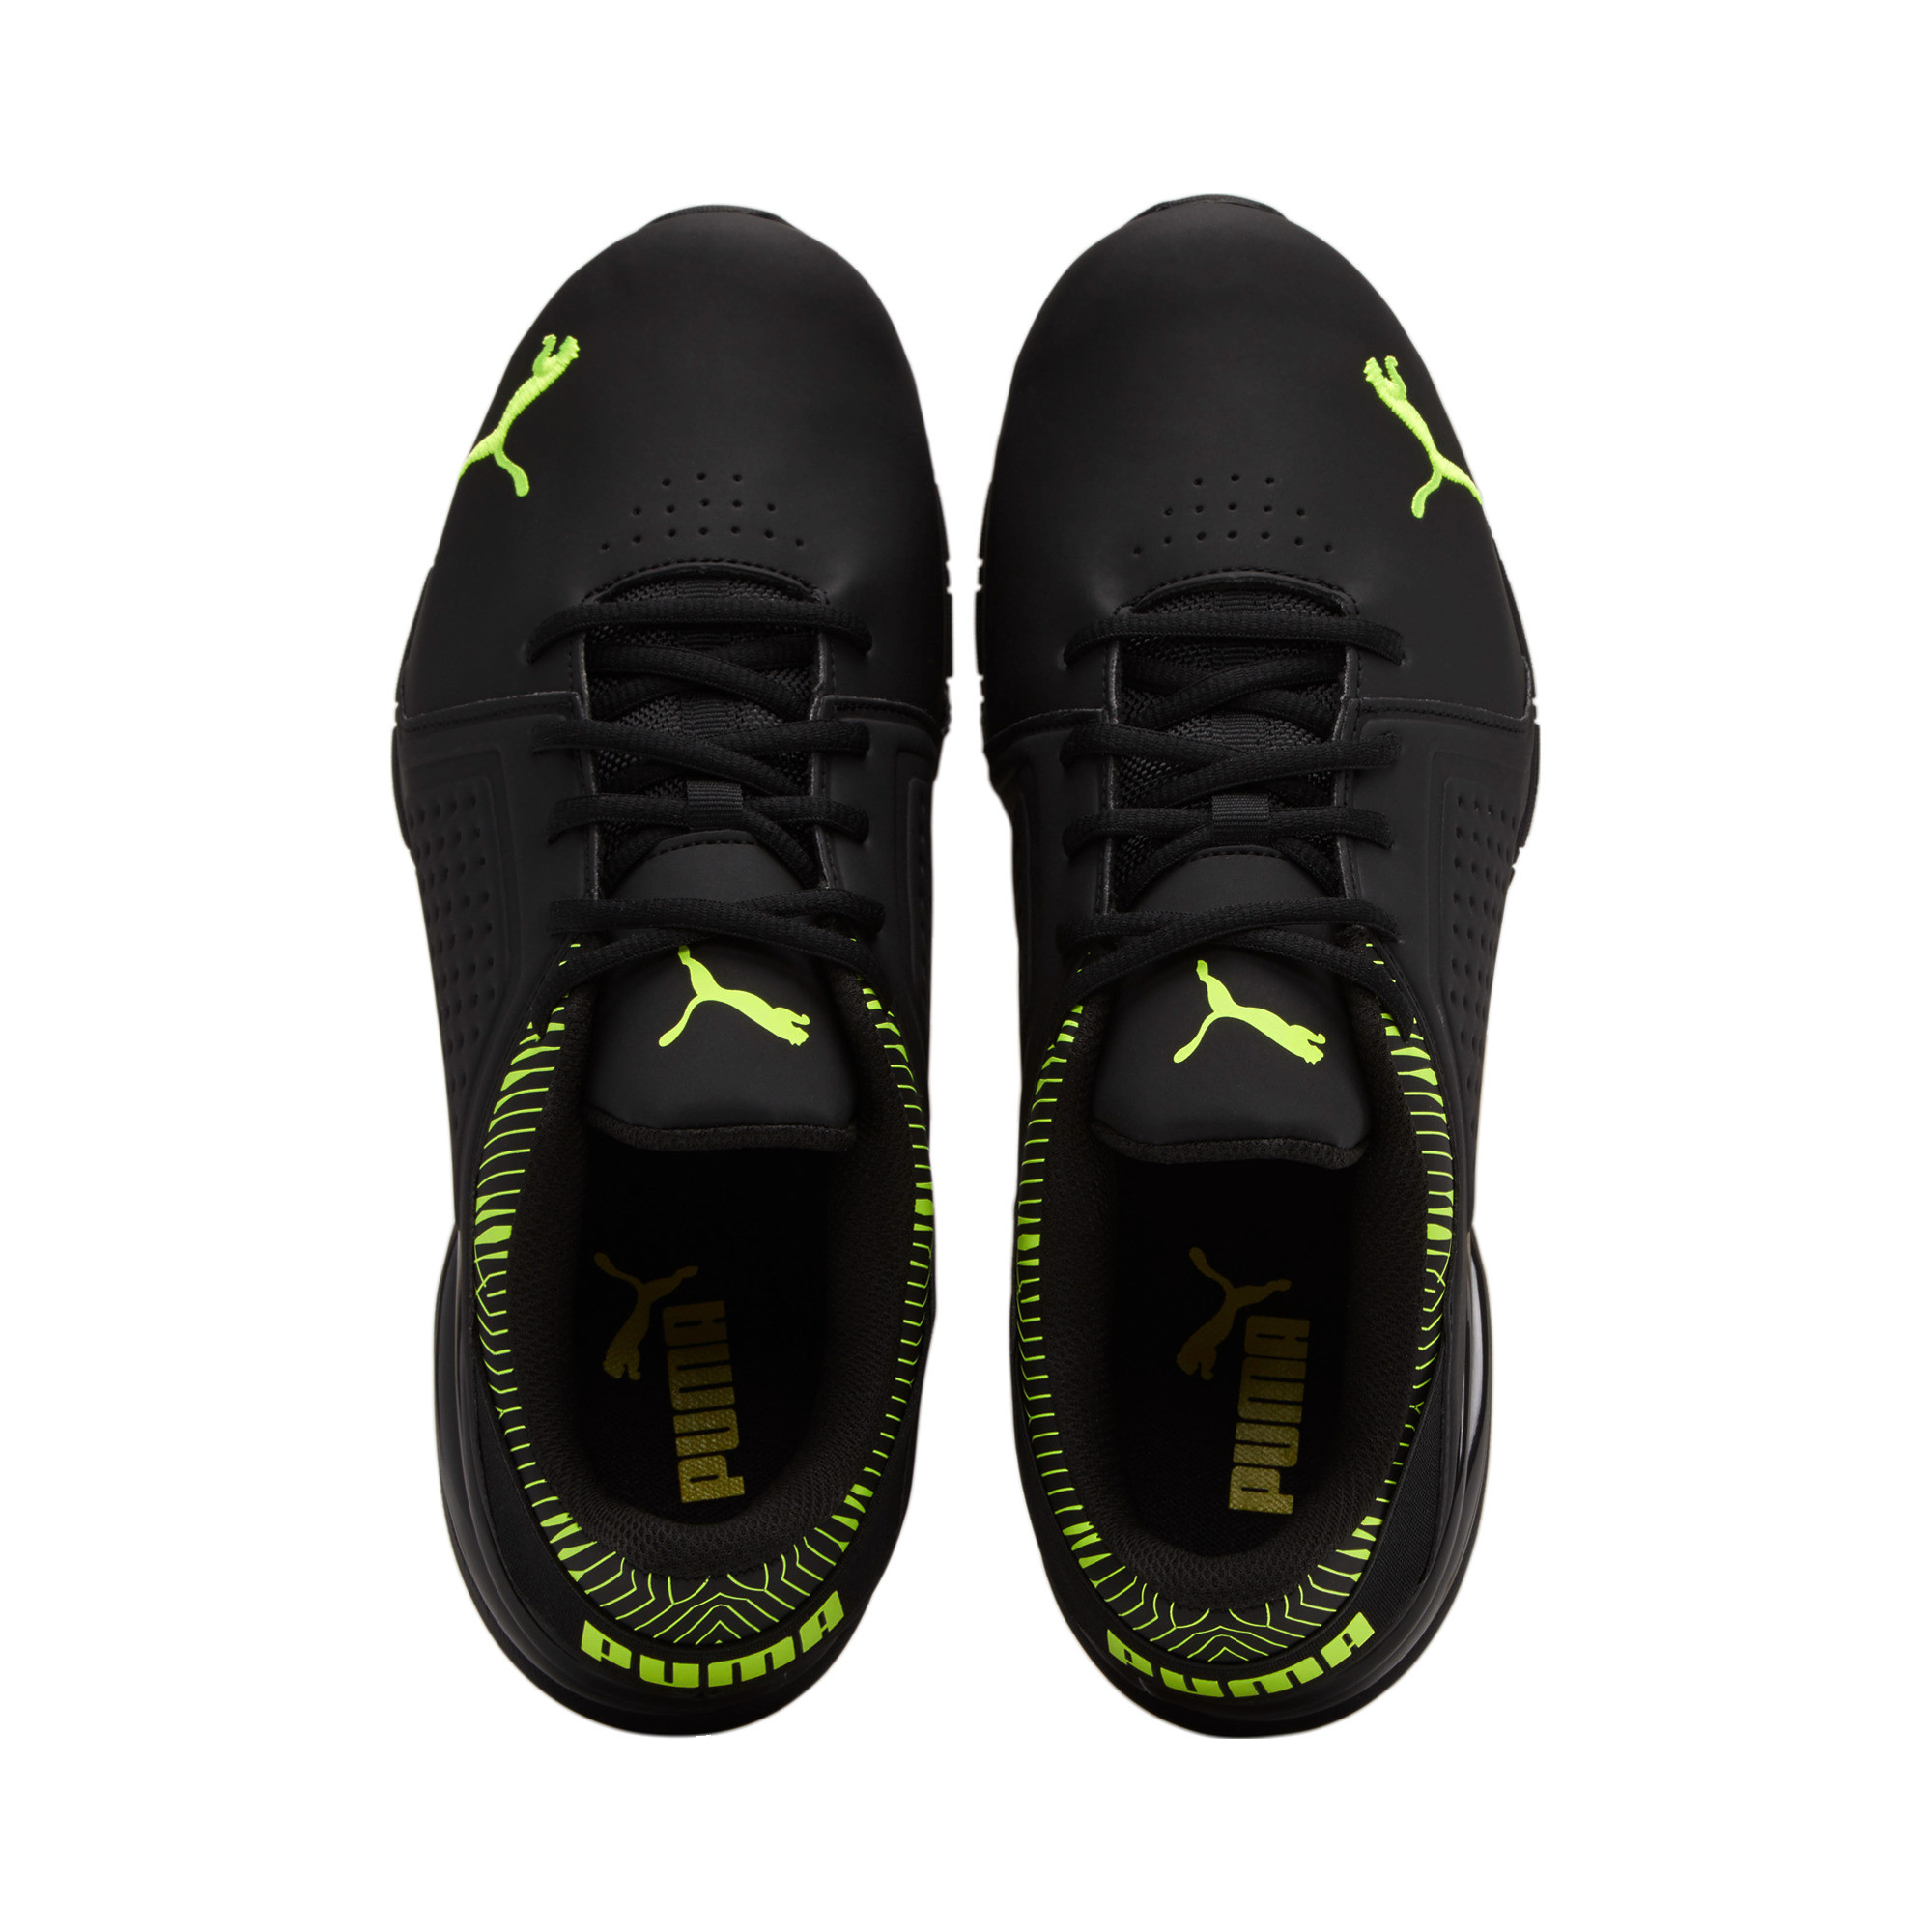 PUMA-Men-039-s-Viz-Runner-Graphic-Sneakers thumbnail 7